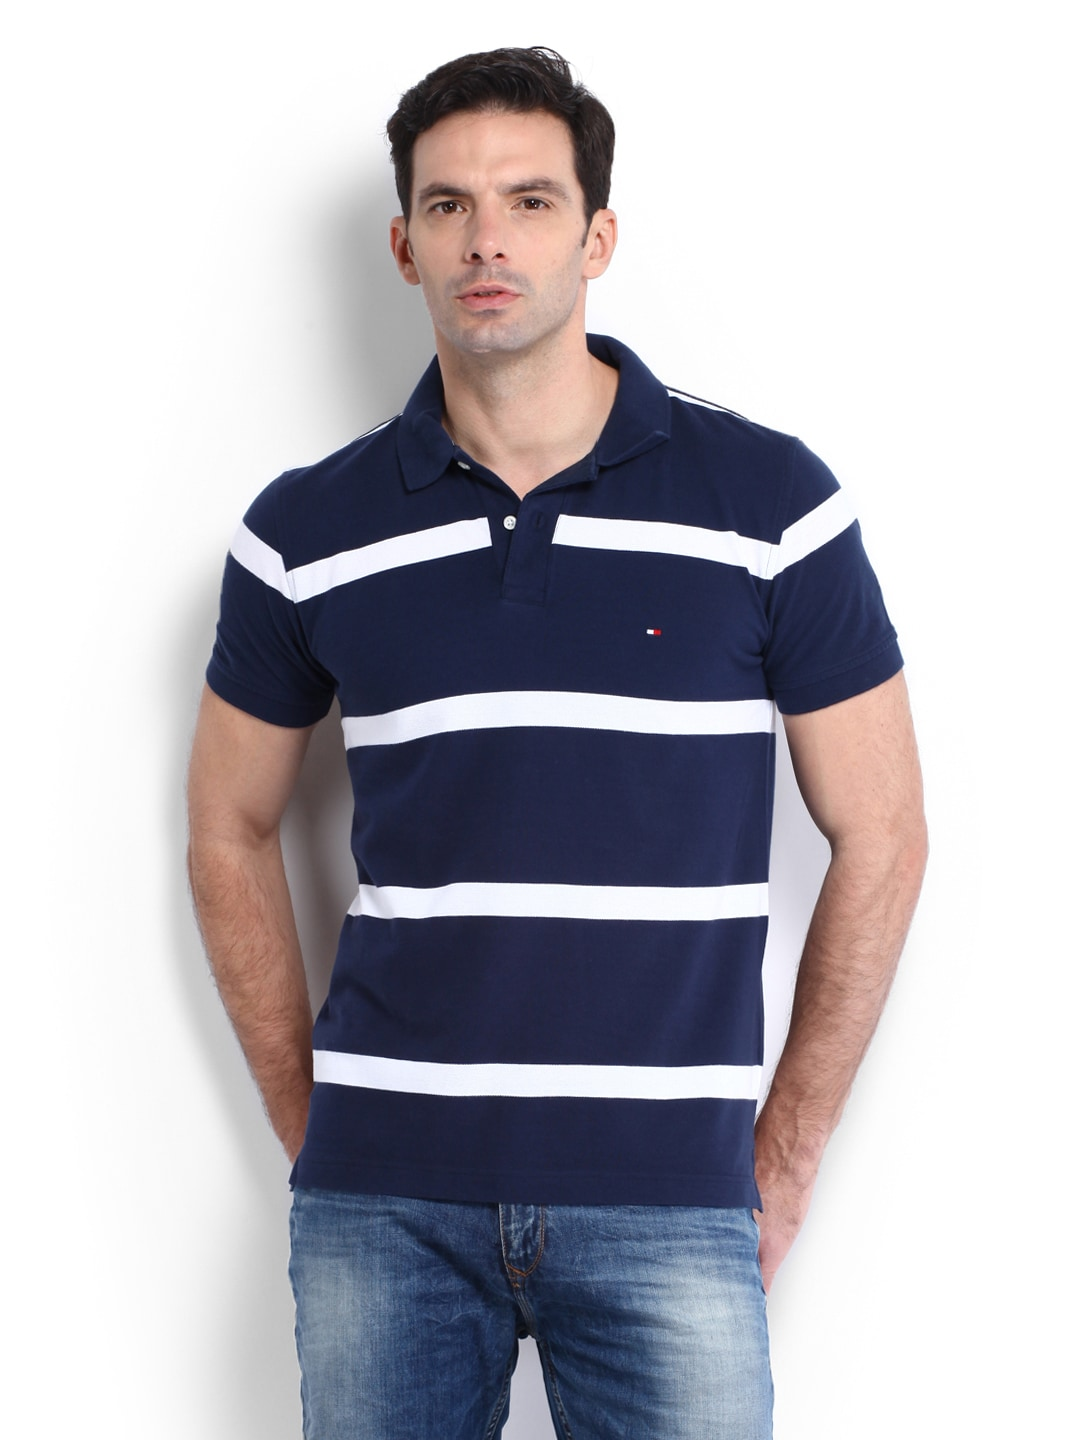 ba1597658 Tommy hilfiger a4amk075 Men Navy White Striped Mads Polo T Shirt- Price in  India